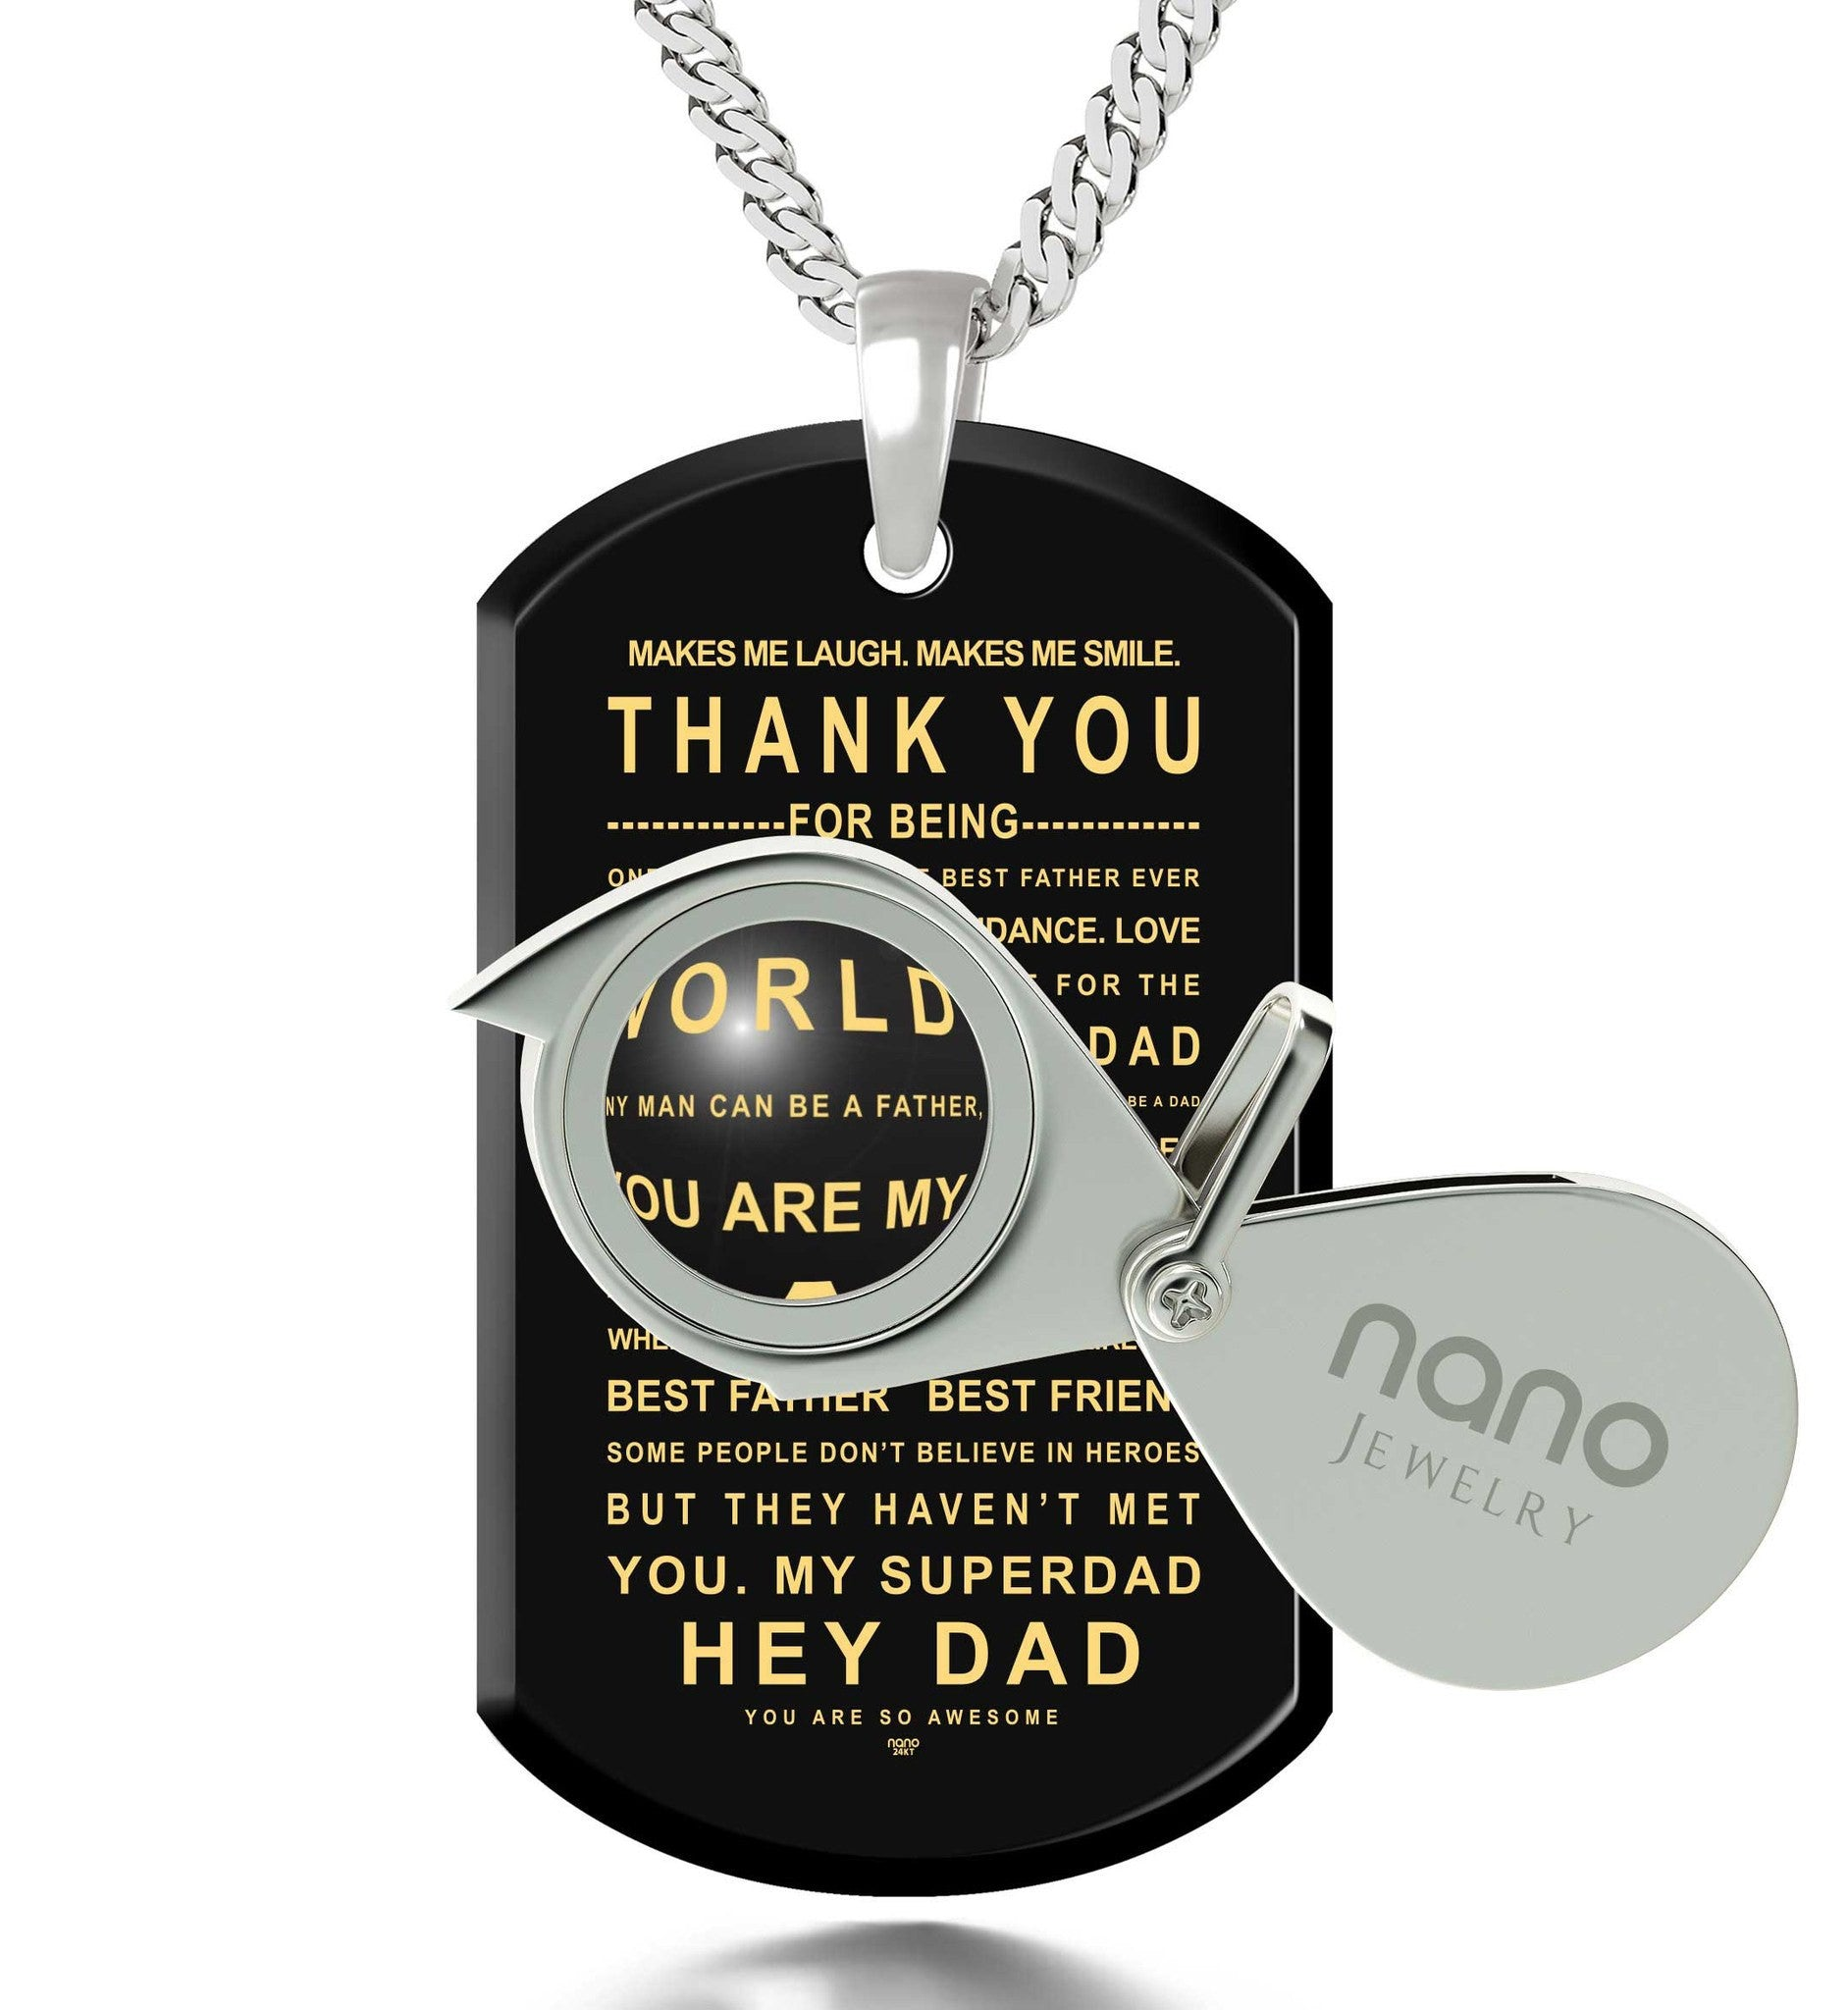 Gifts For Father In Law 14k White Gold Chain With Meaningful Pendant Birthday Presents